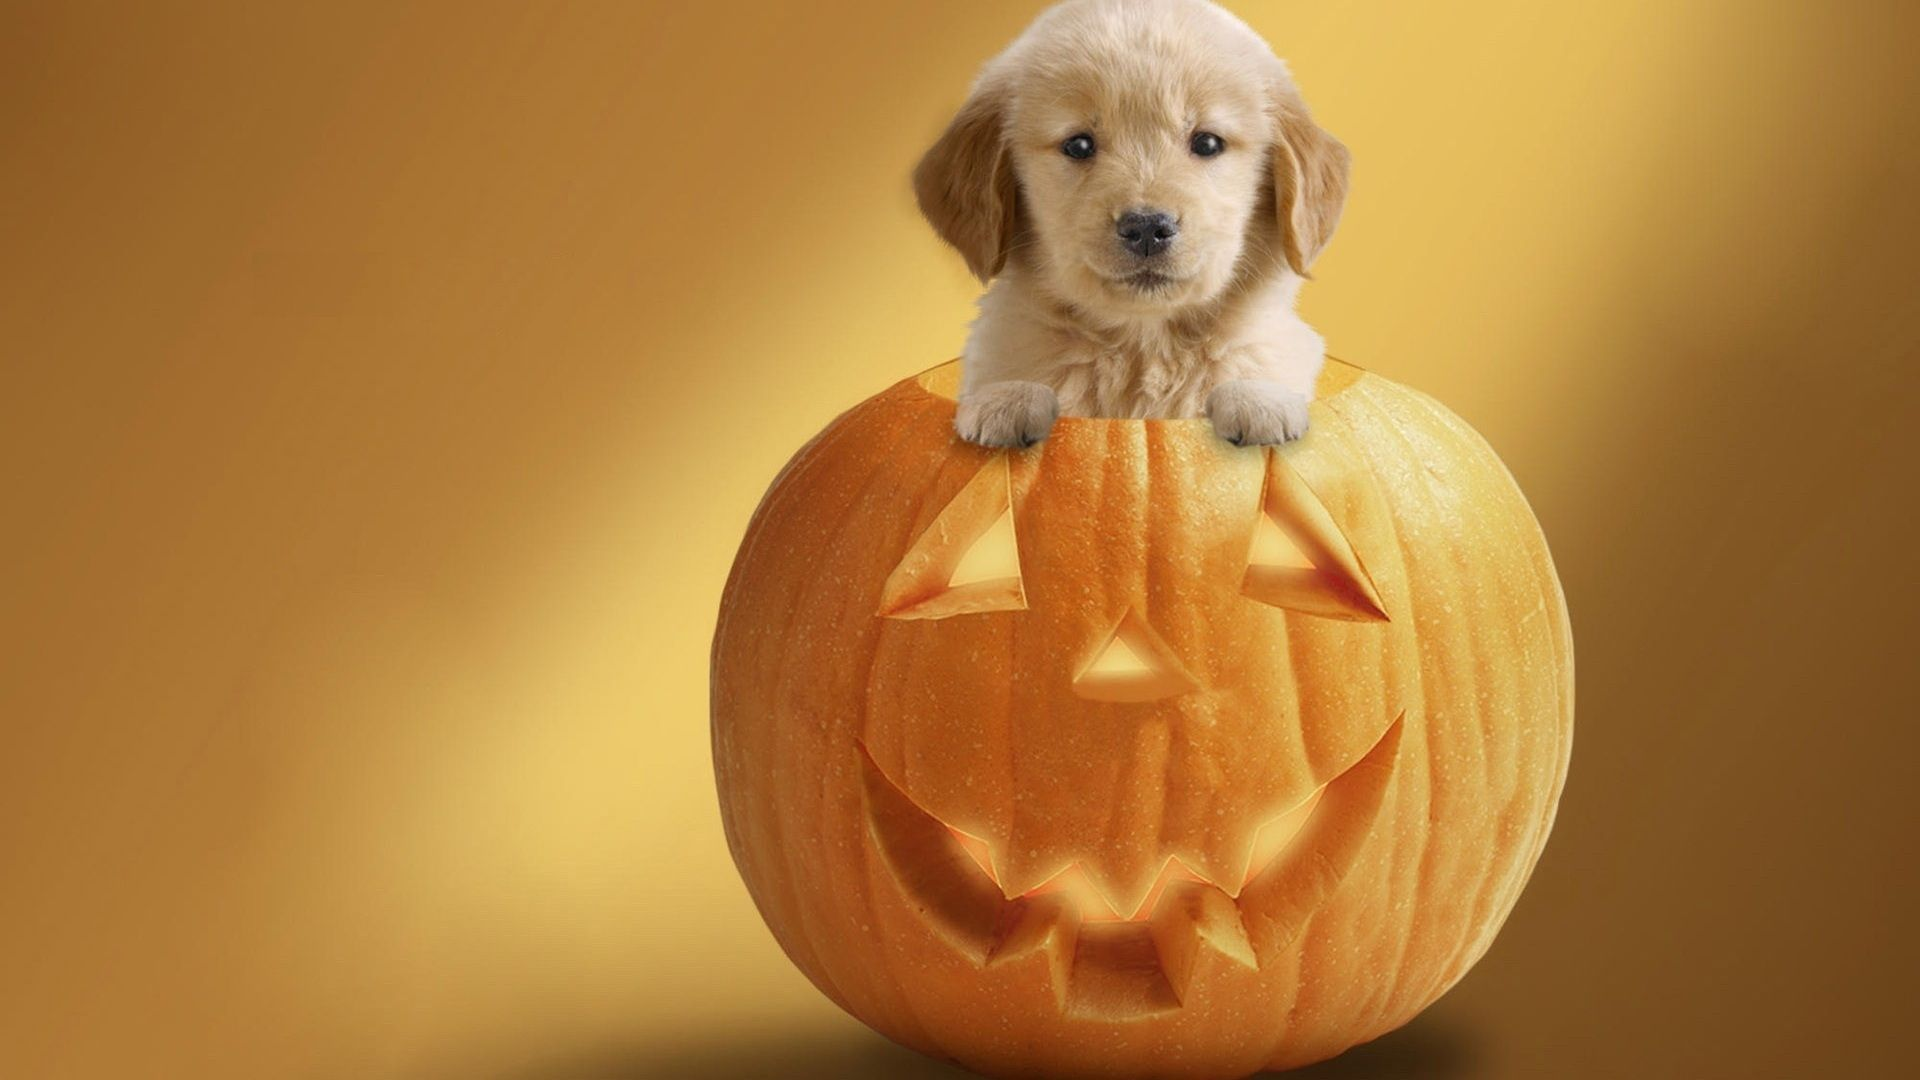 Halloween Dog Pics Halloween Dog Wallpaper Halloween Puppy Dog Halloween Cute Puppies